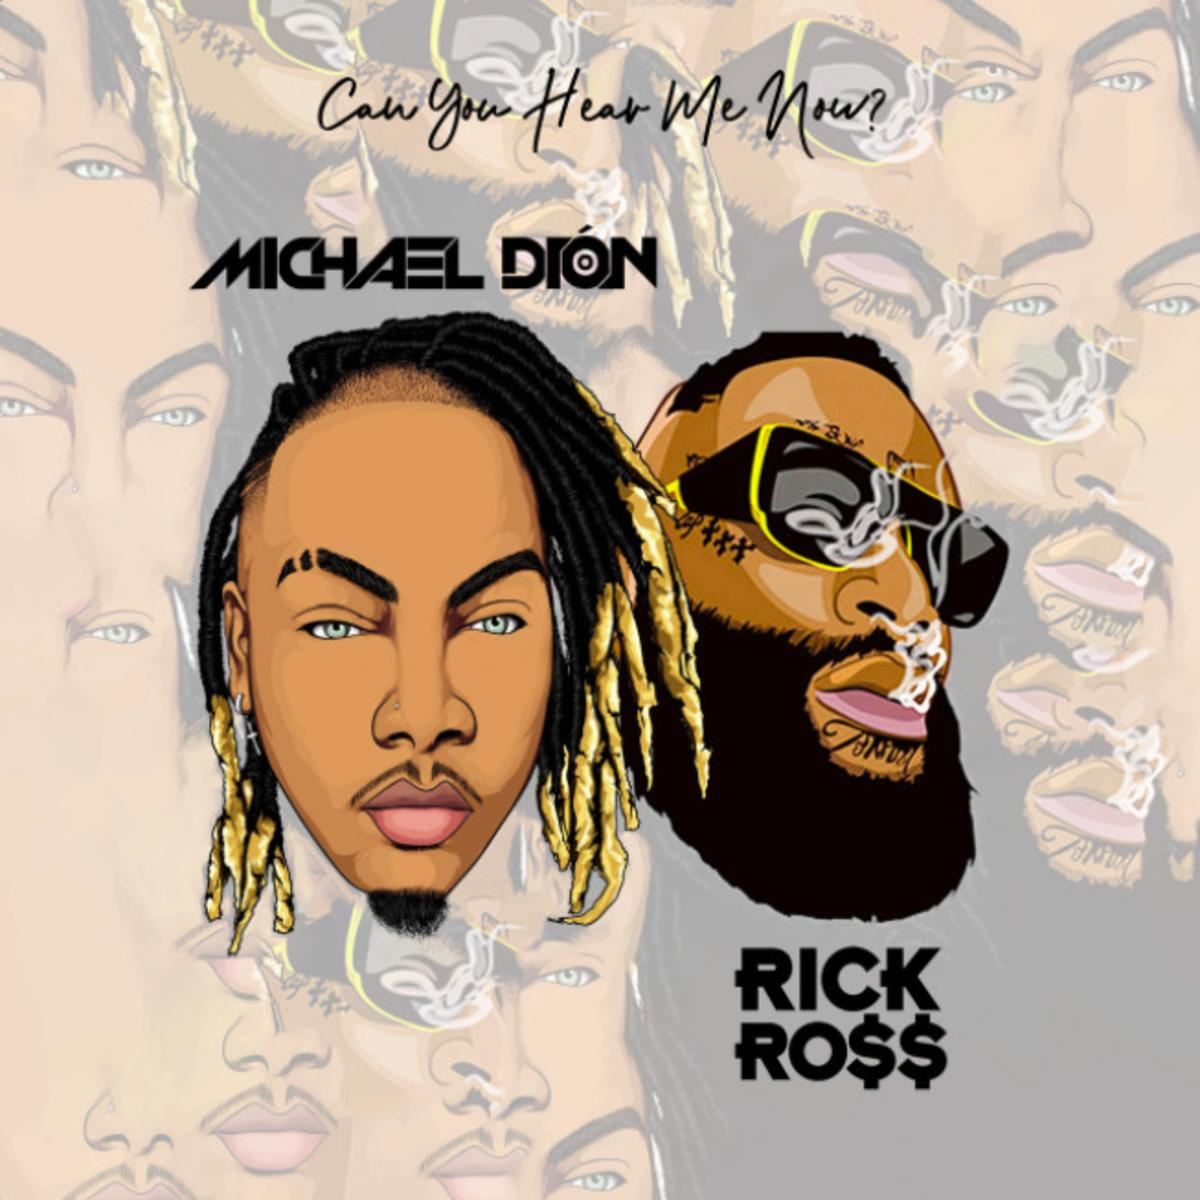 MP3: Michael Dion - Can You Hear Me Now? Ft. Rick Ross